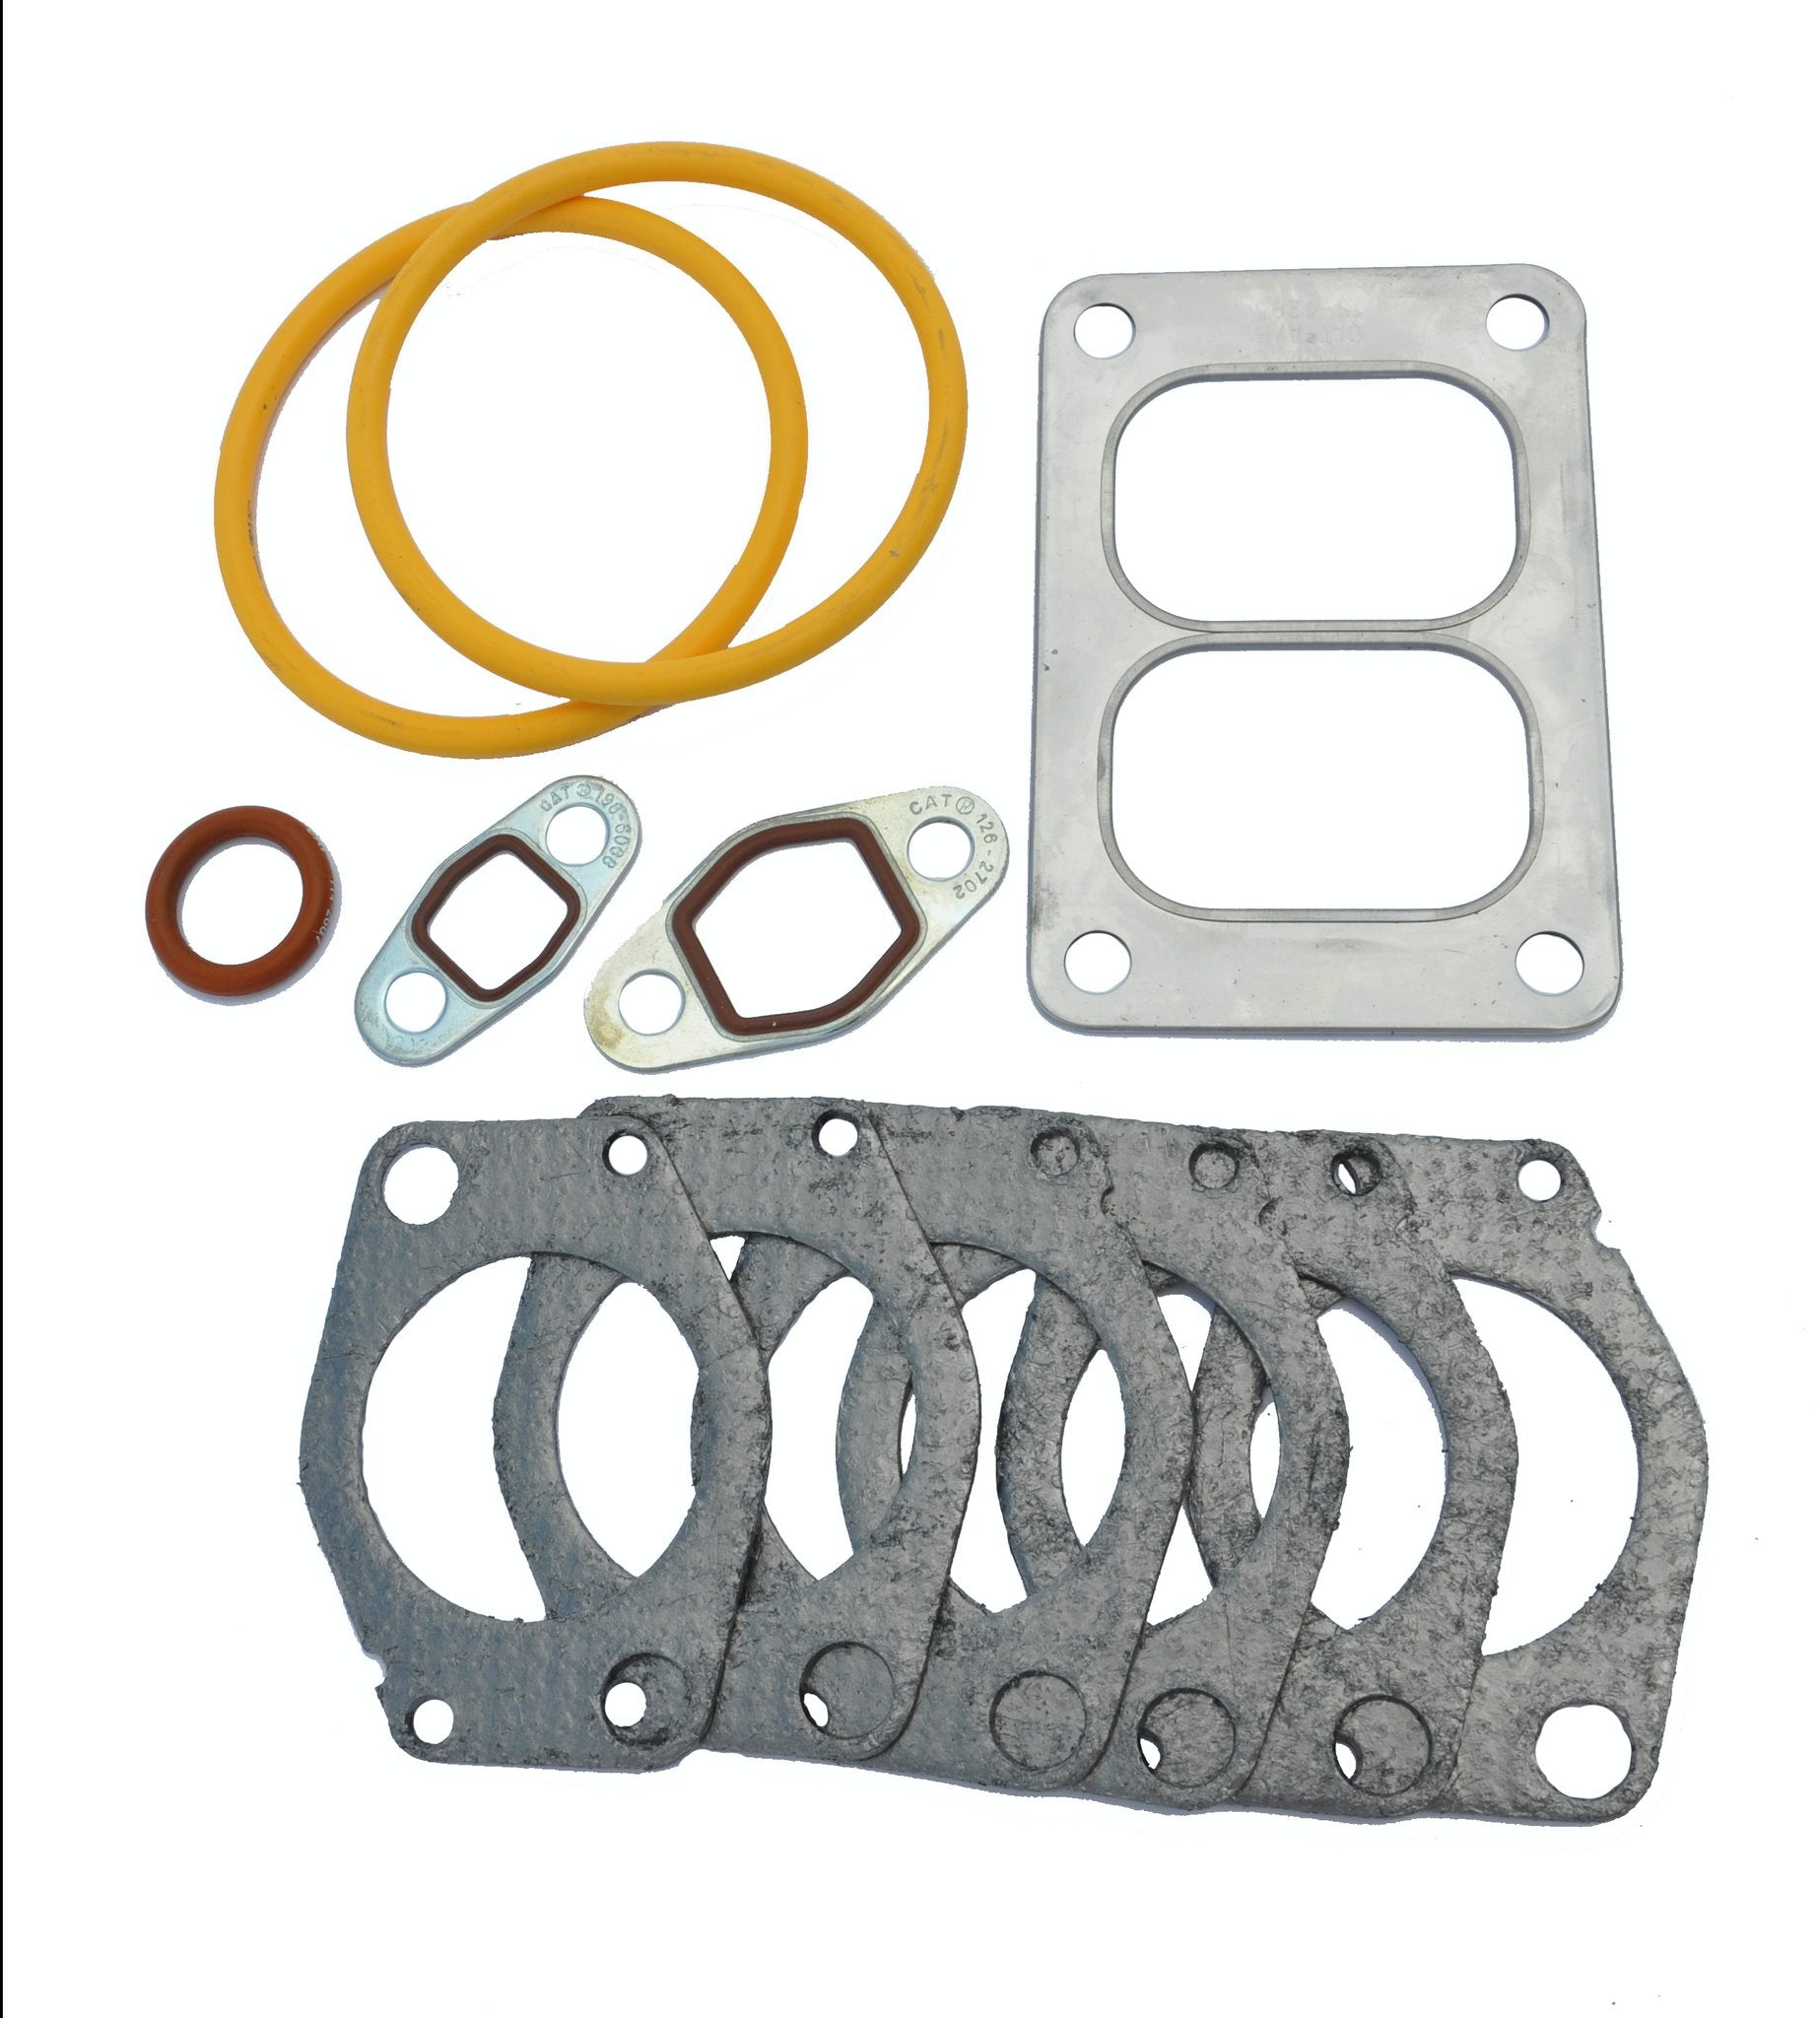 Manifold Gasket Kit Caterpillar 3406E/C15/C16